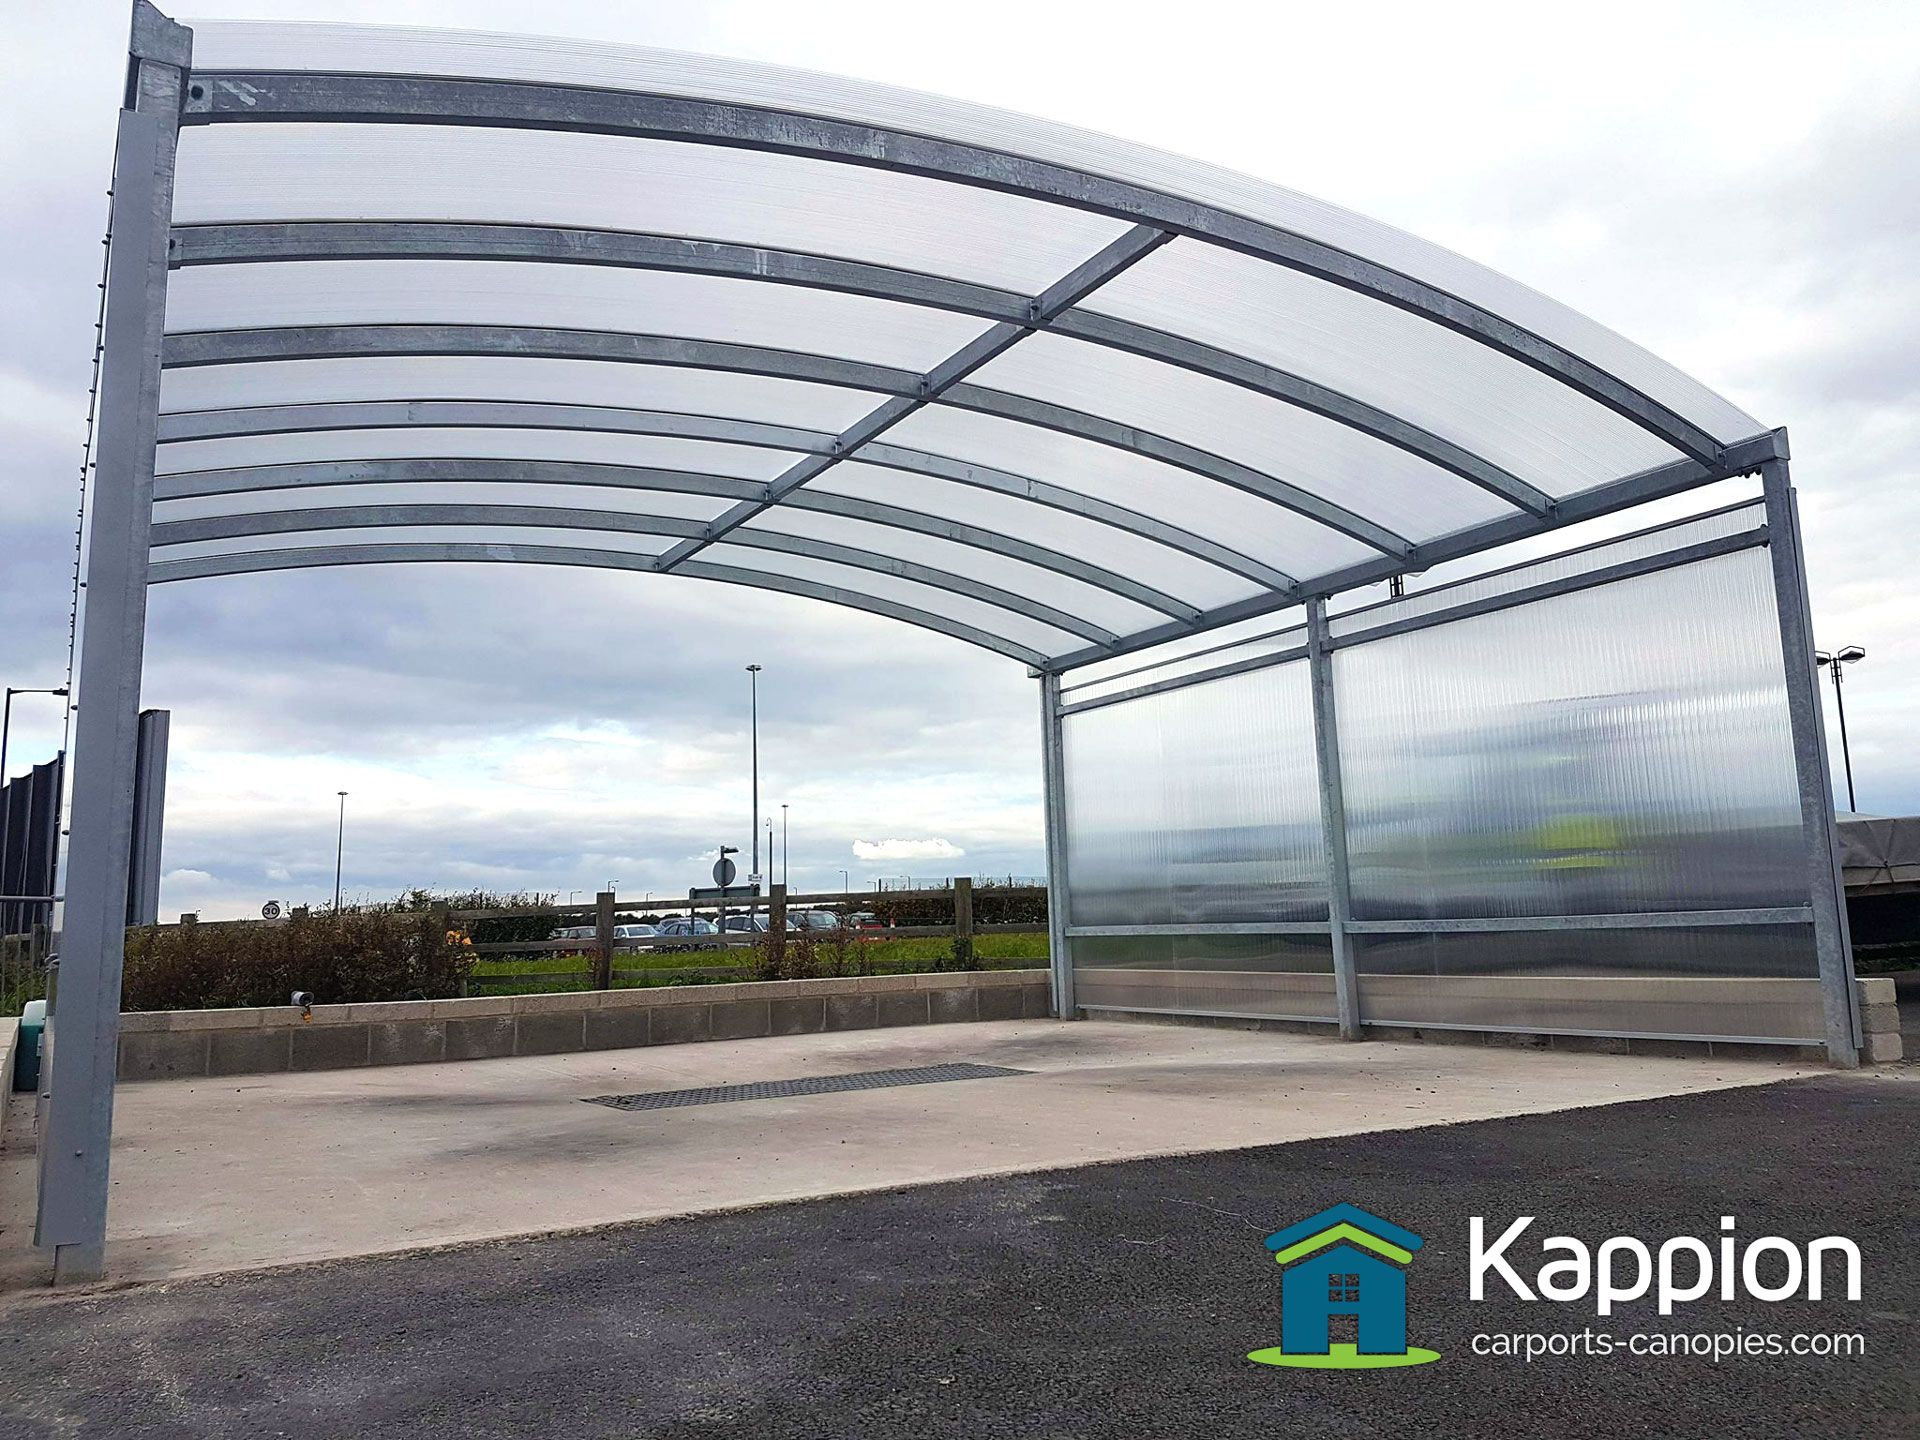 Carport canopy car valet bay with infill sidewalls installed at